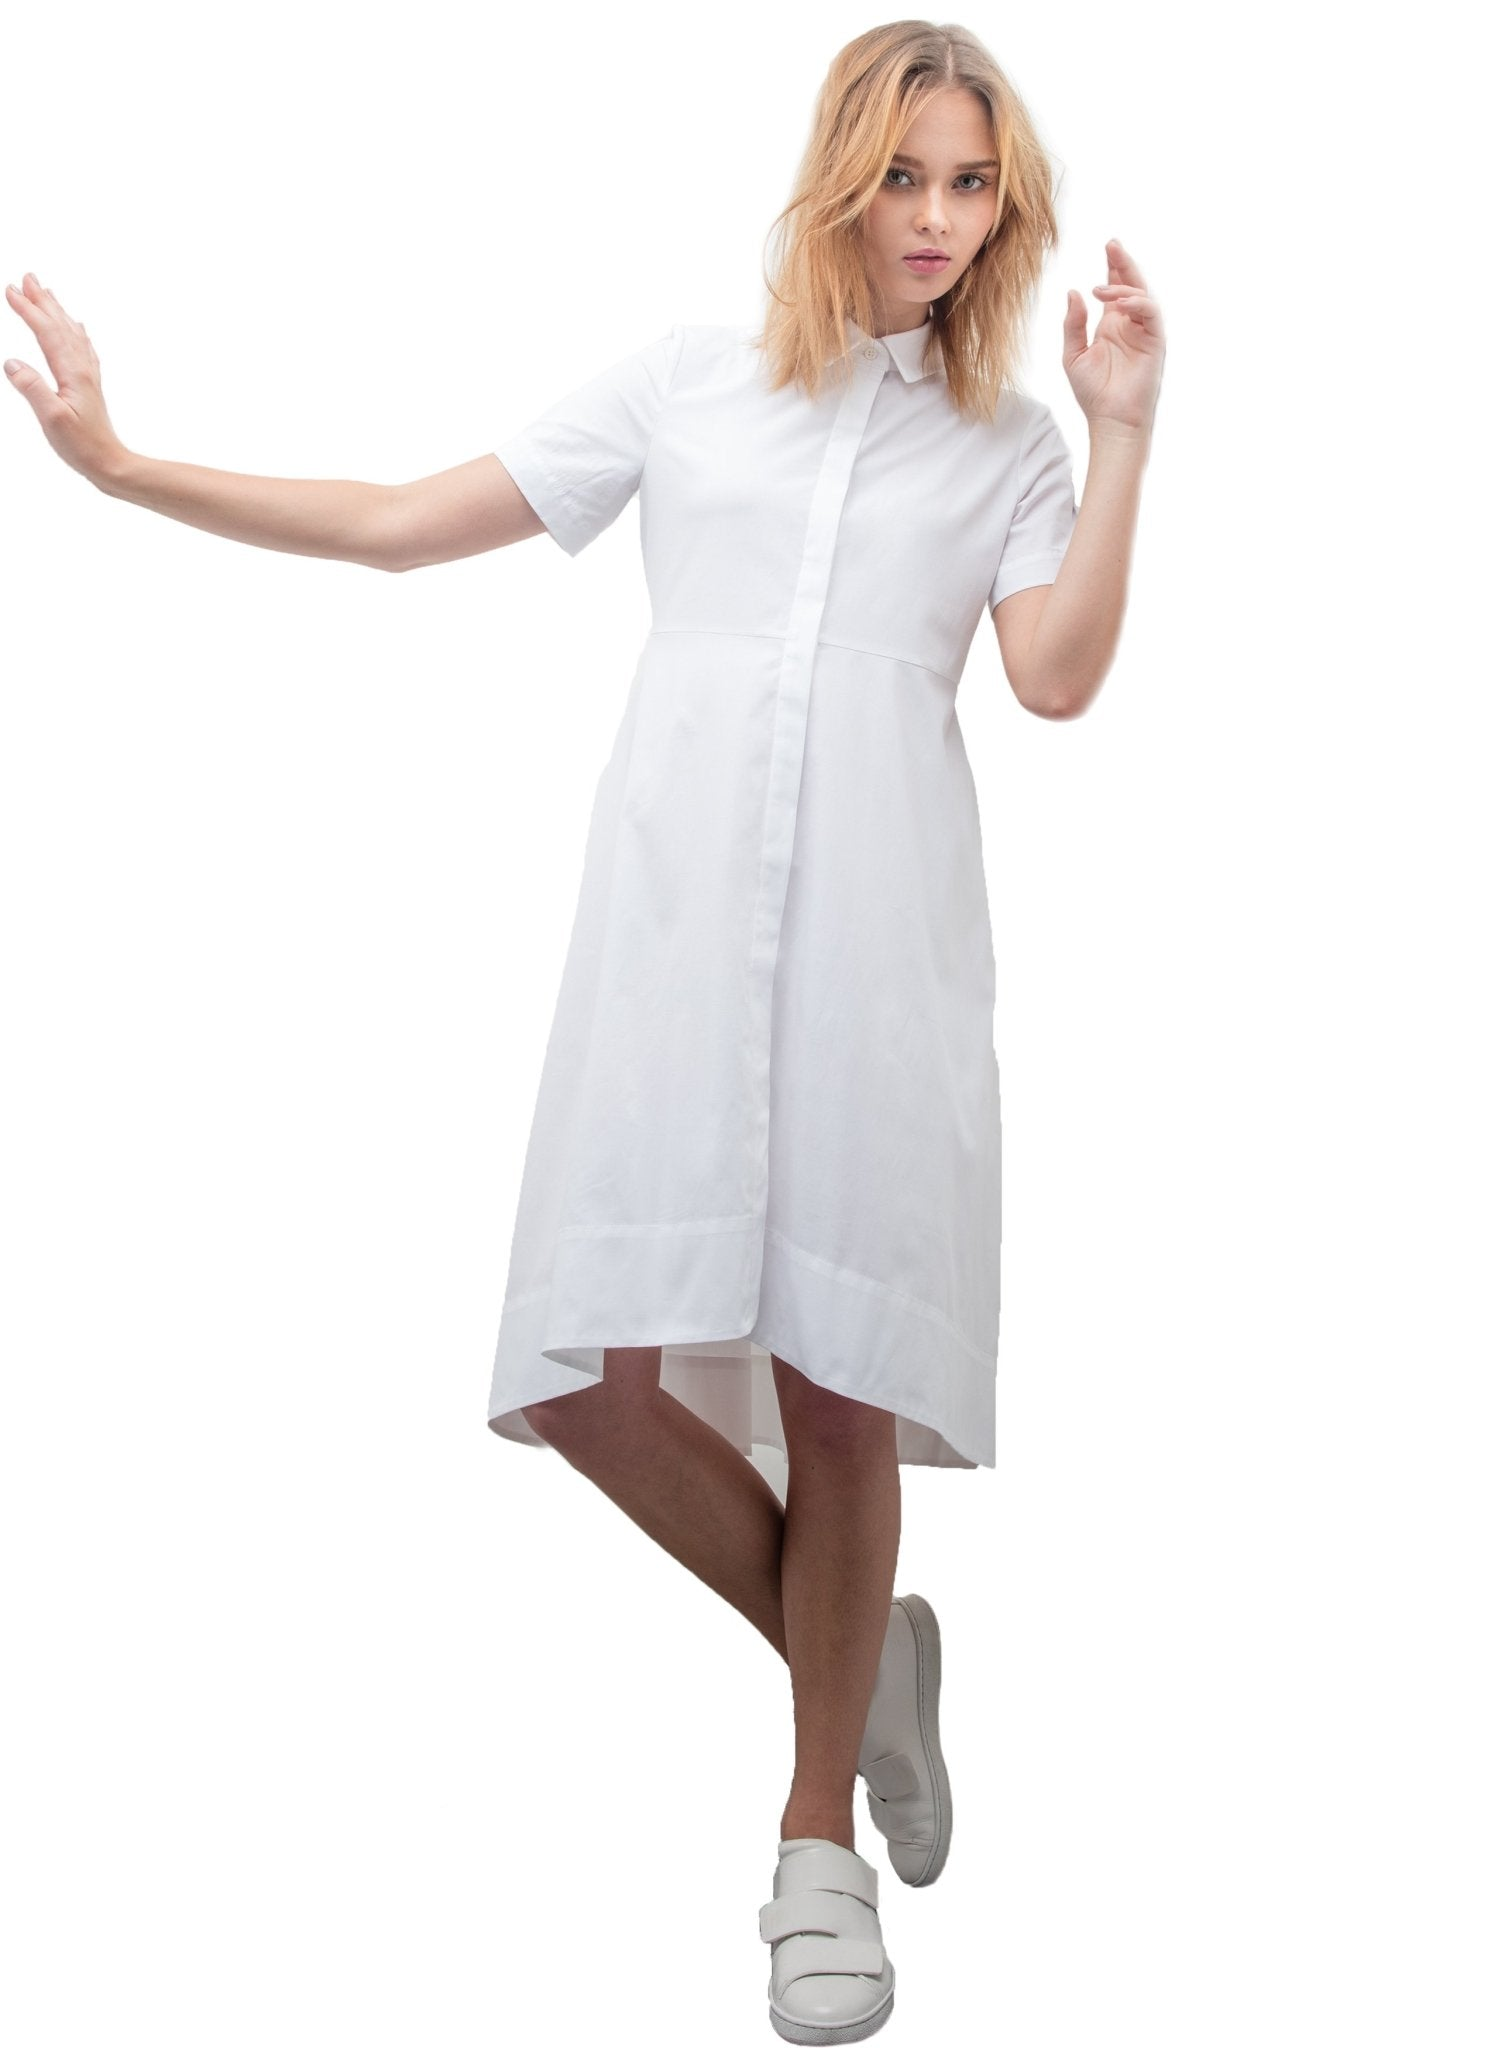 Shirt Maternity Dress - White - Mums and Bumps